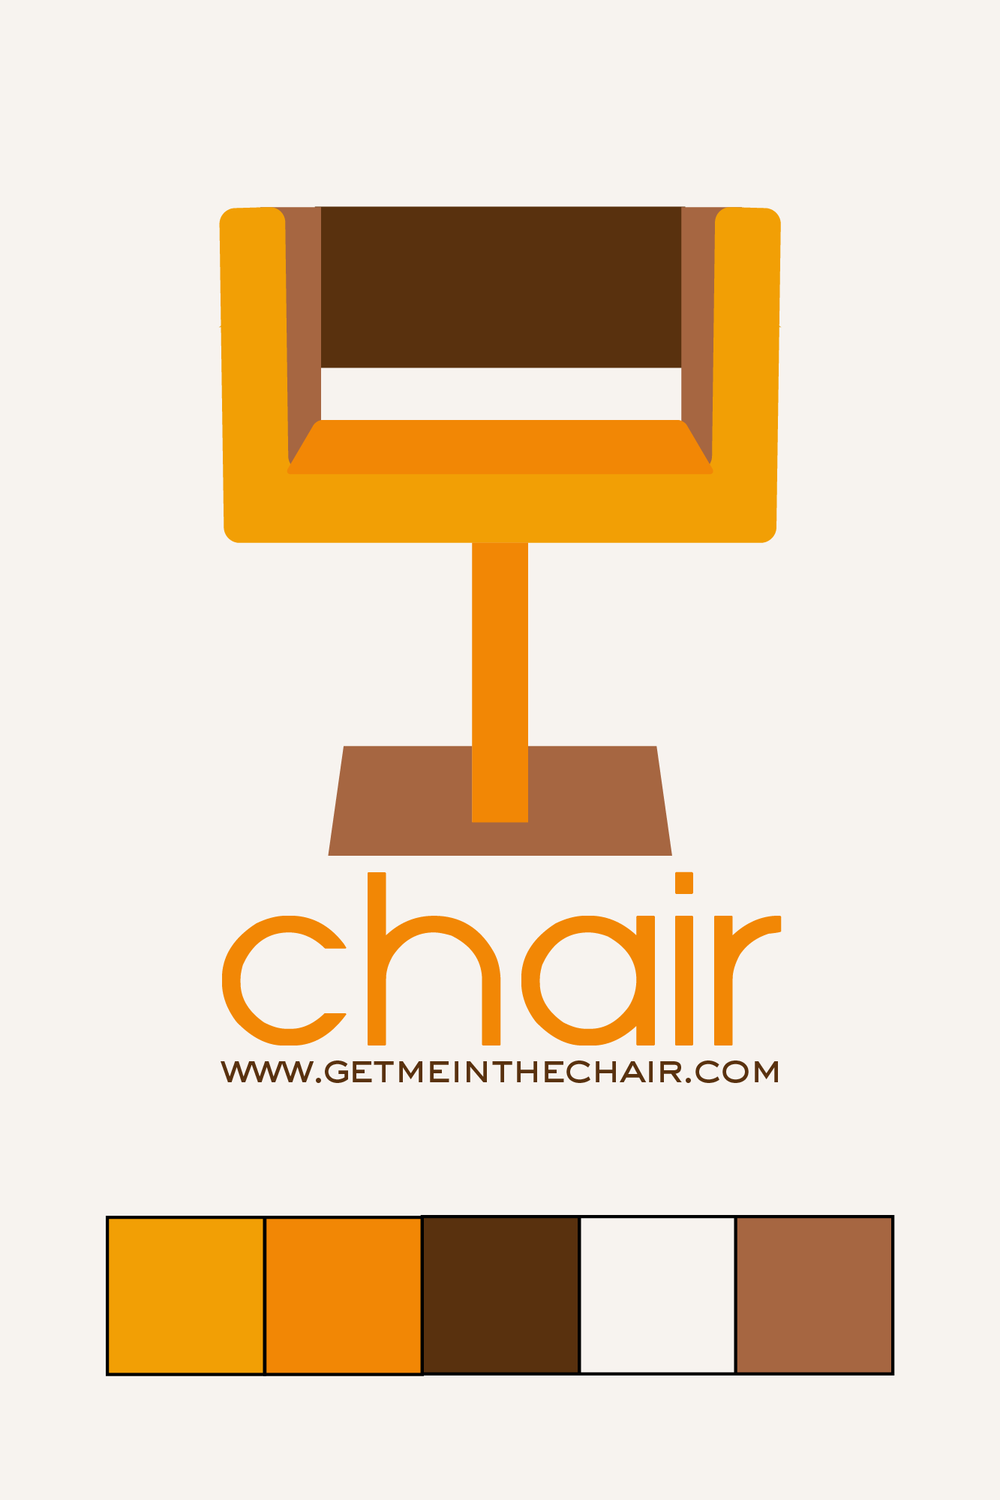 Chair_LOGO_5.png